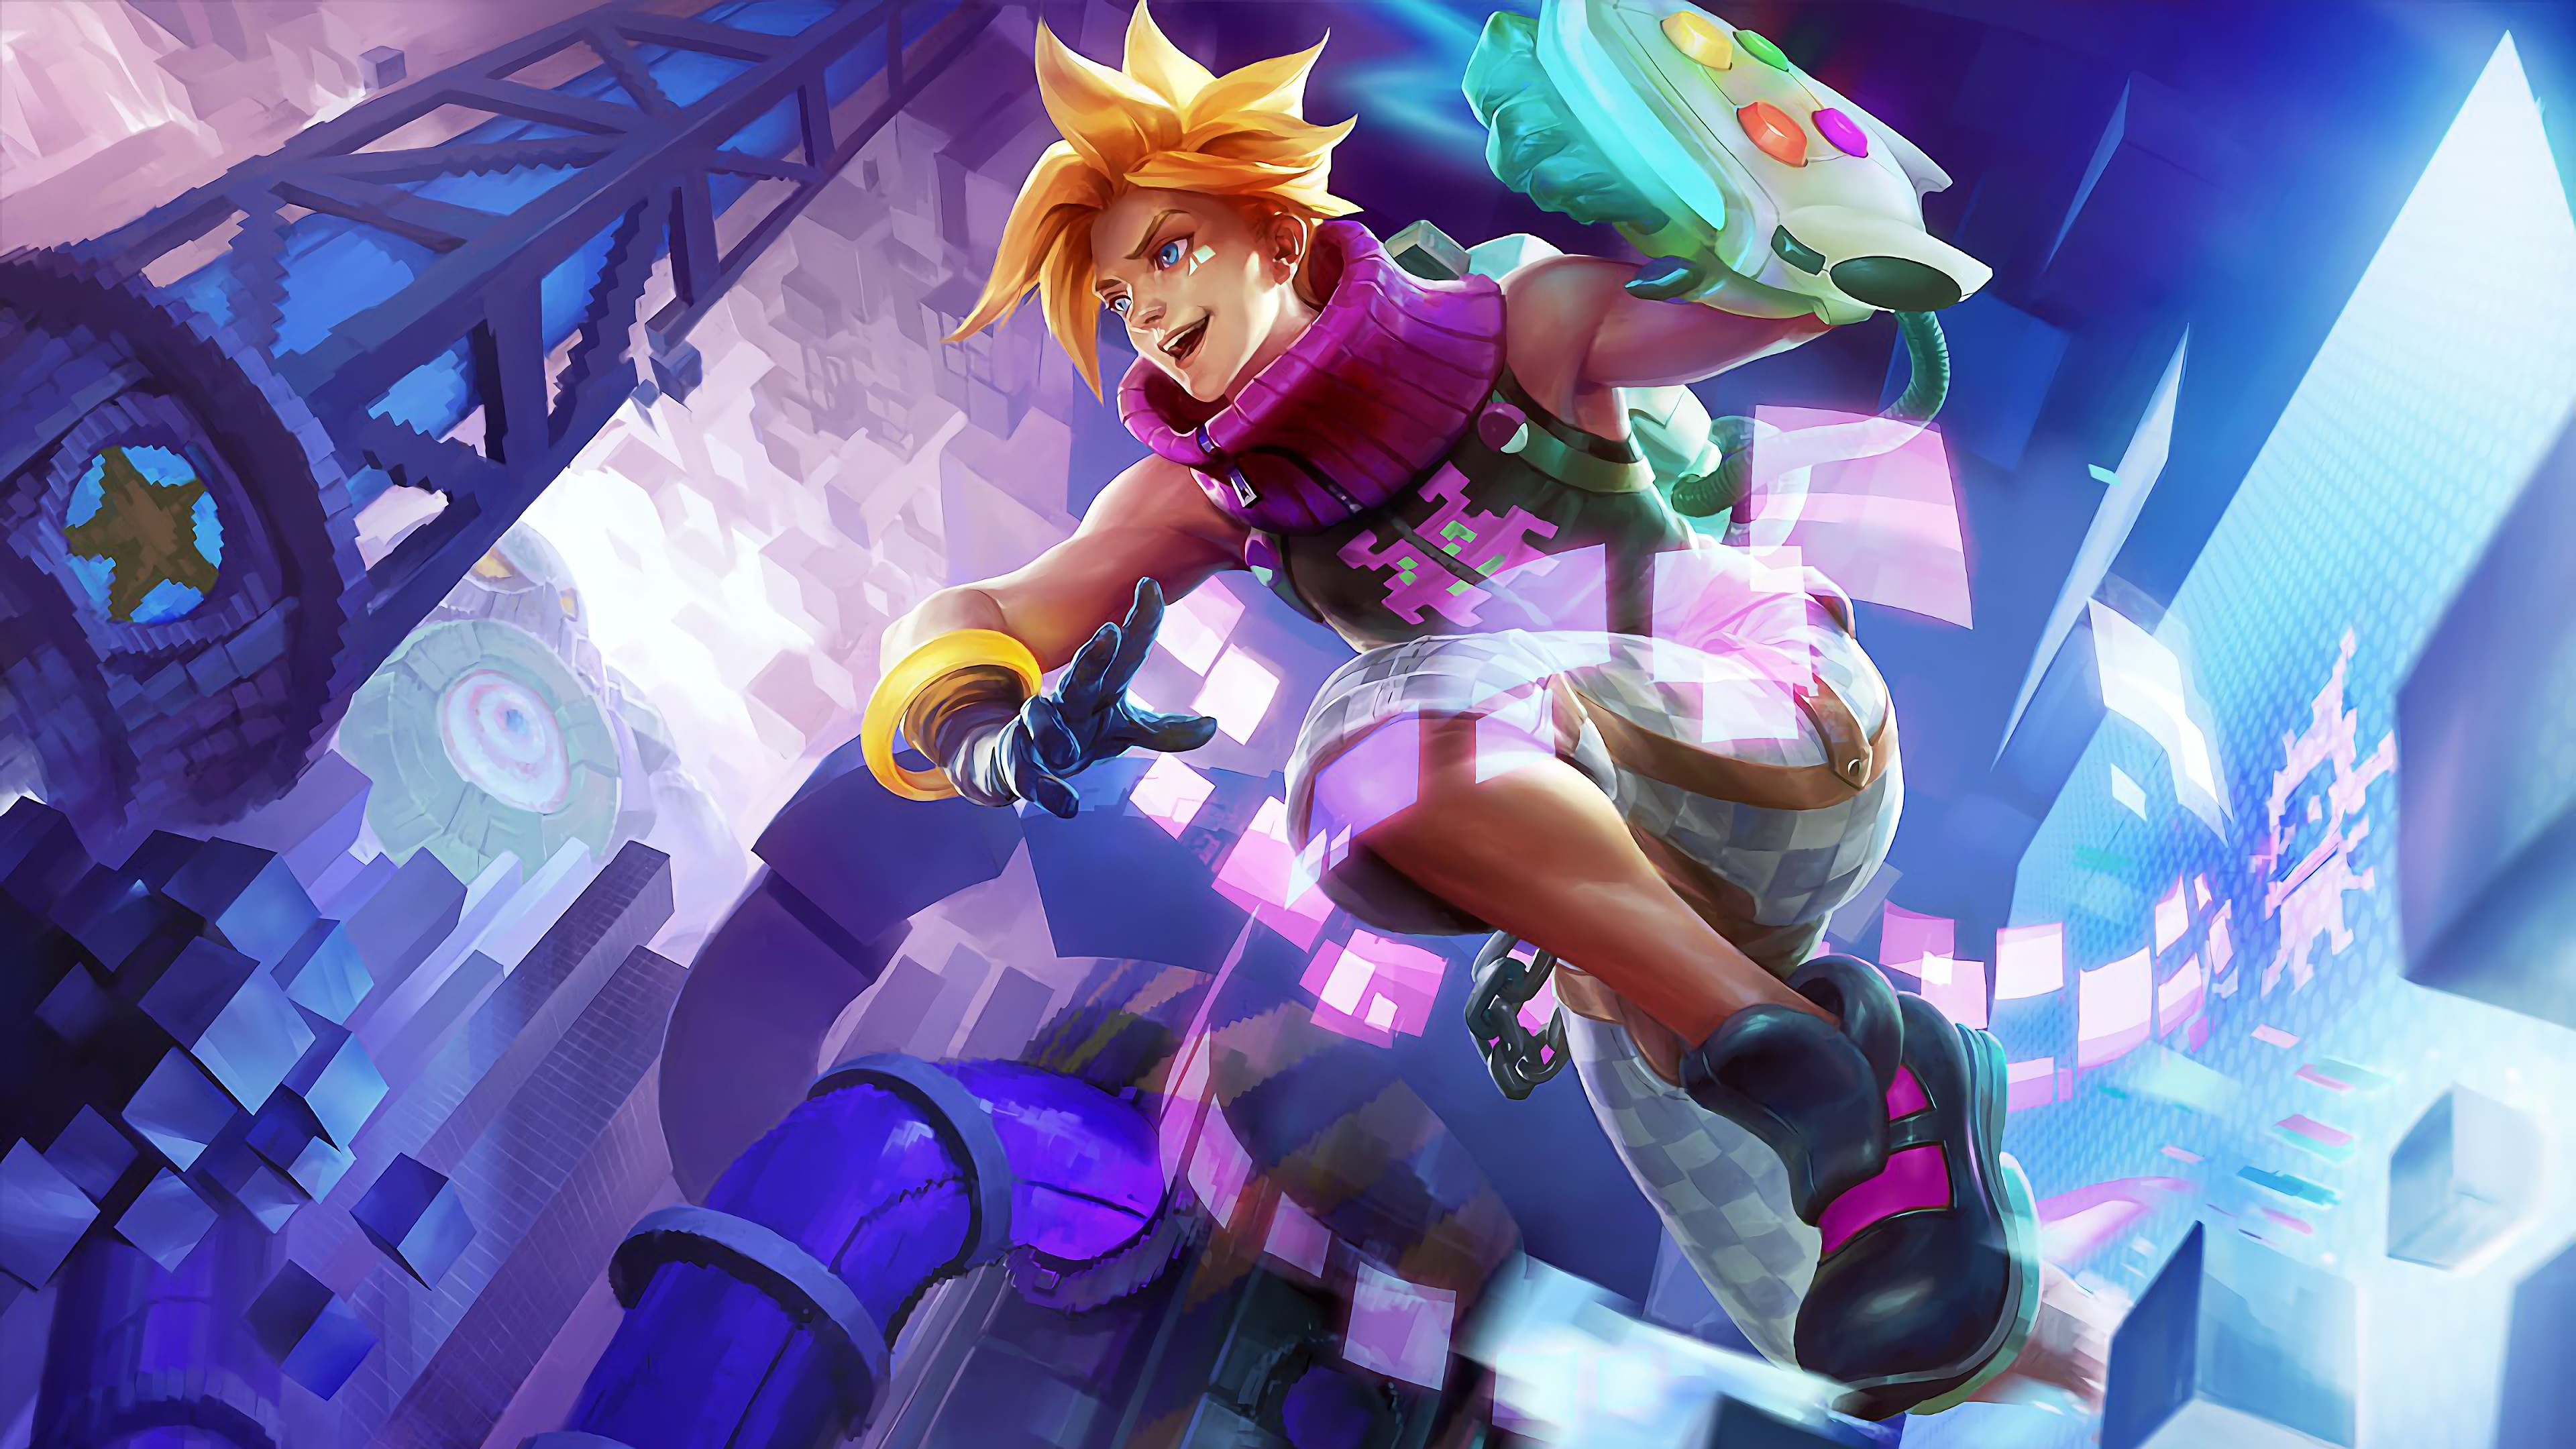 arcade ezreal new spash art rework update skin league of legends lol lol 1574104340 - Arcade Ezreal New Spash Art Rework Update Skin League of Legends LoL lol - league of legends, Ezreal, Arcade - League of Legends